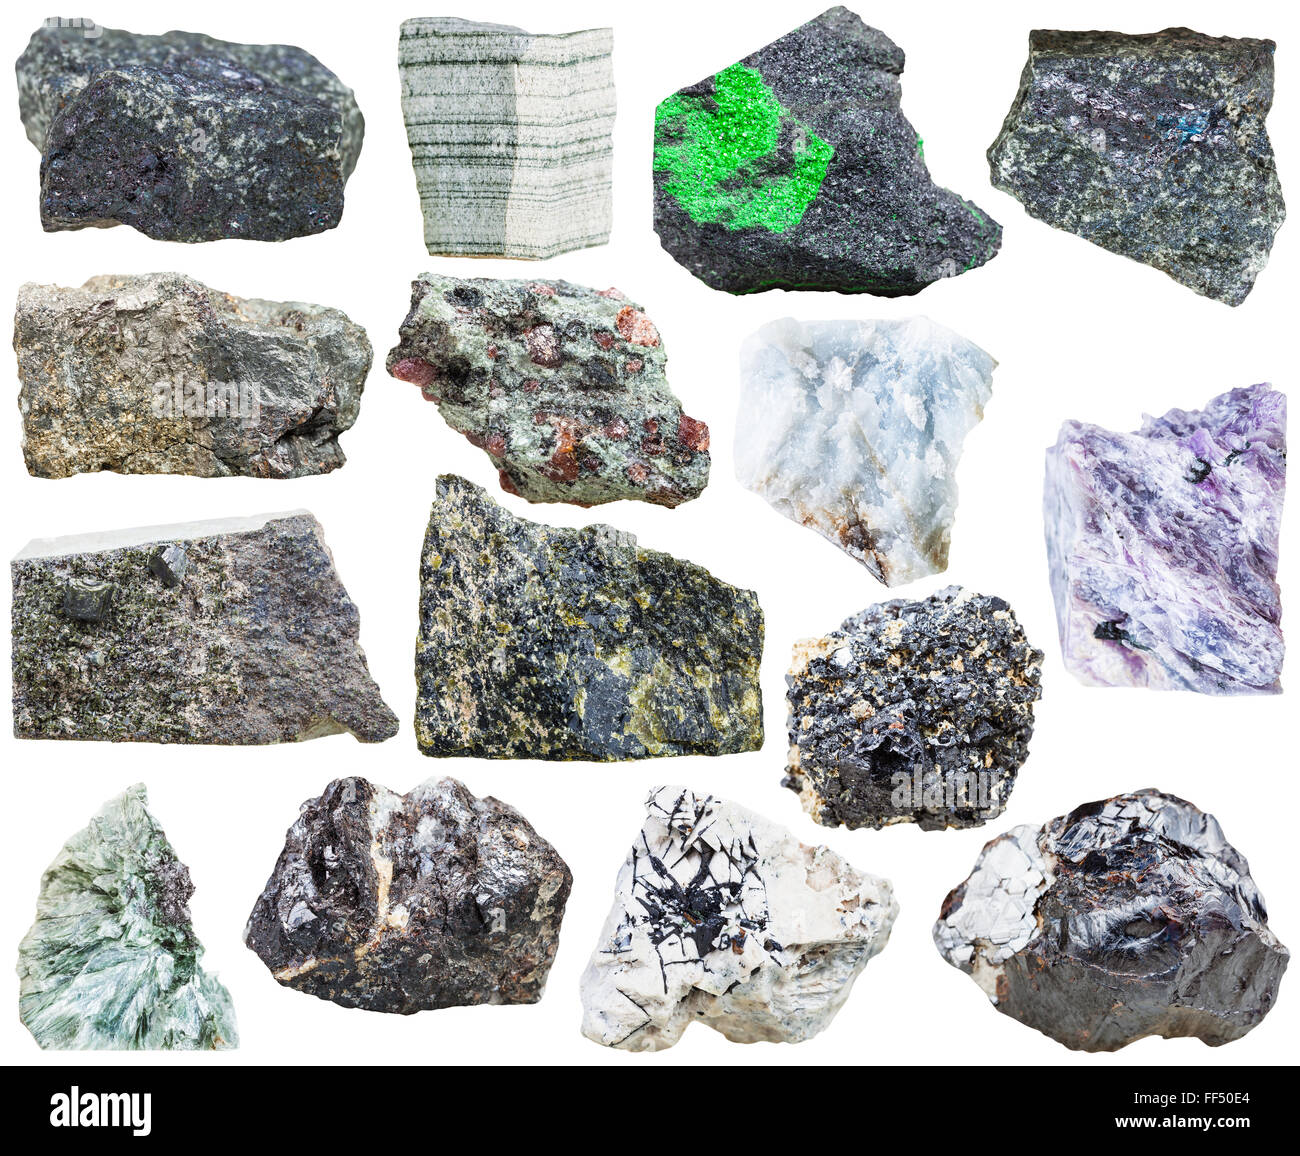 set of natural mineral rock stones - bornite, perovskite, ilmenite, sphalerite, anhydrite, eclogite, uvarovite, - Stock Image